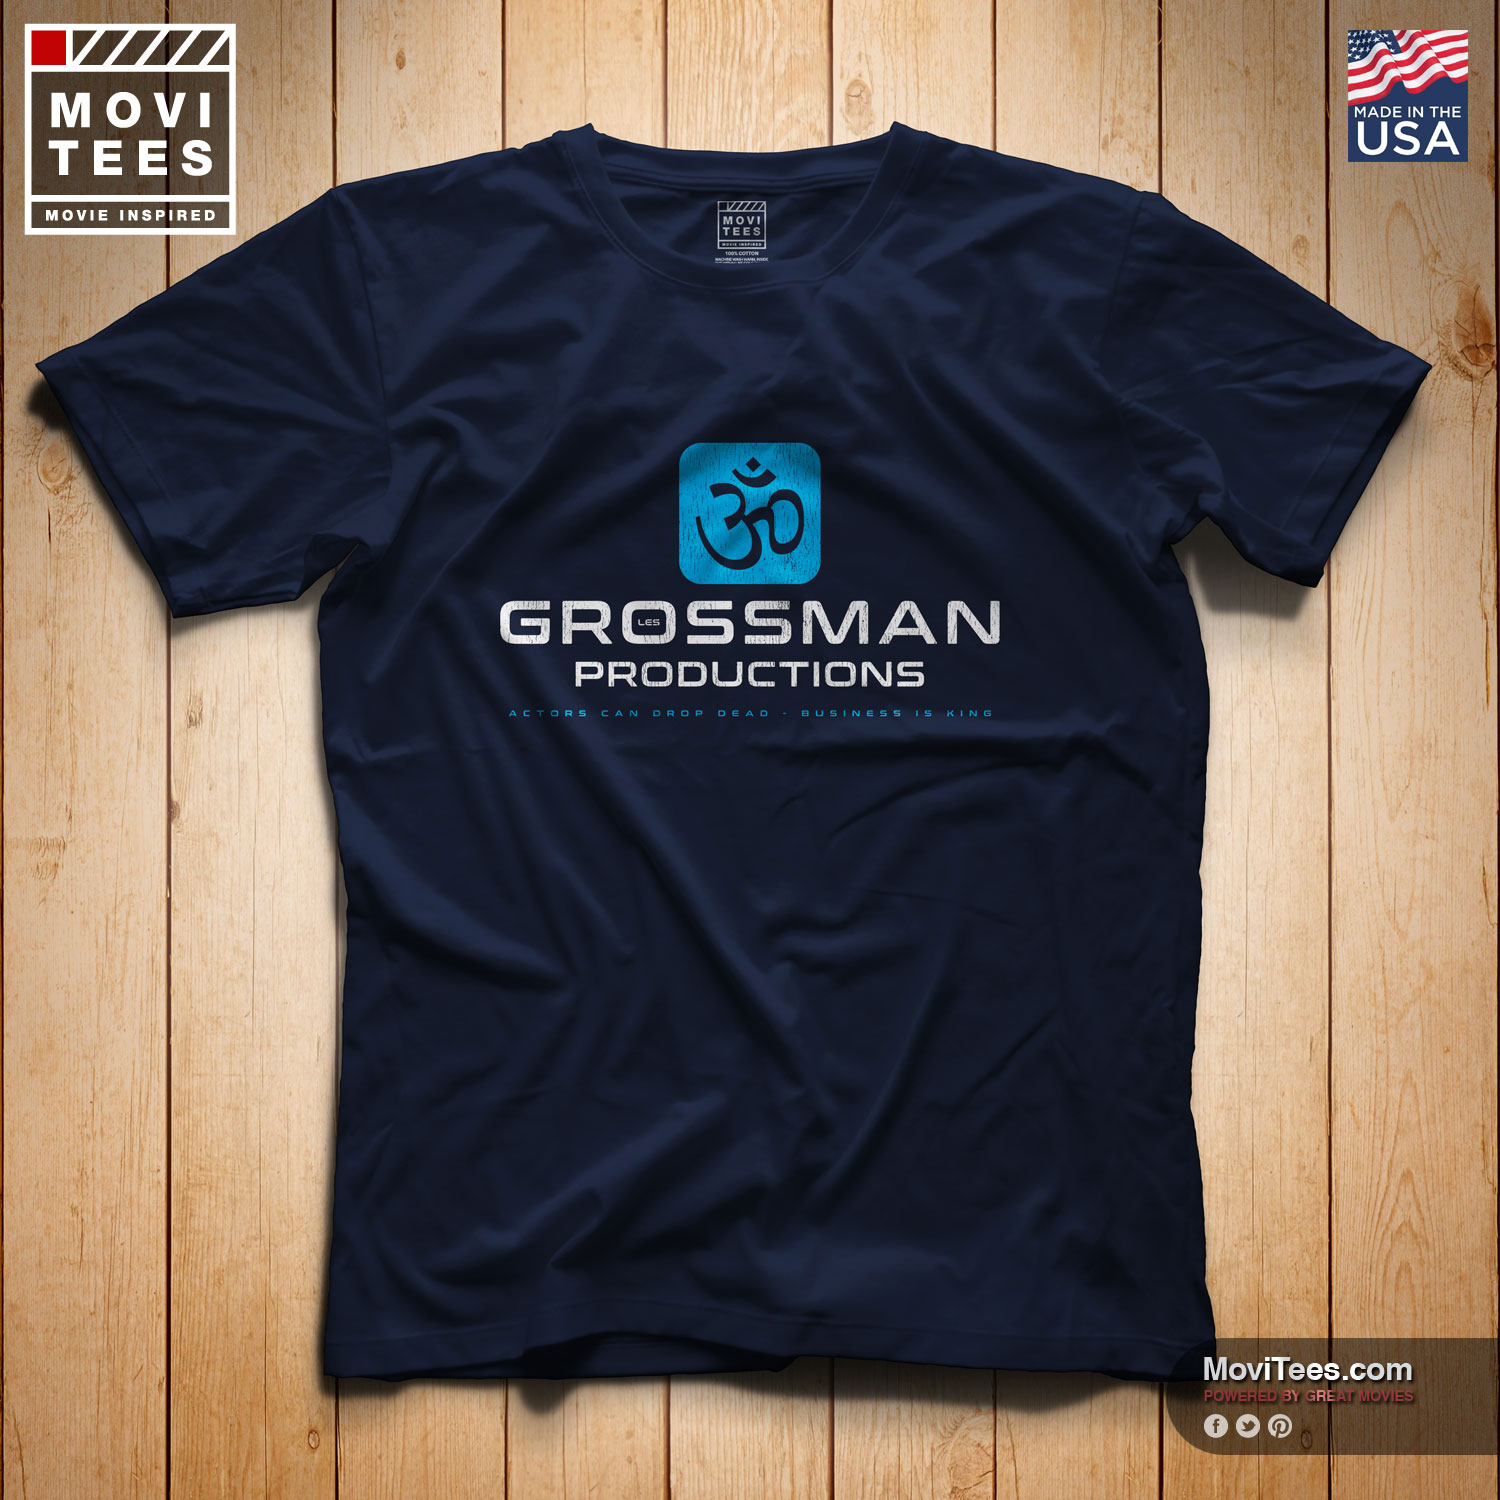 Les Grossman Productions T-Shirt